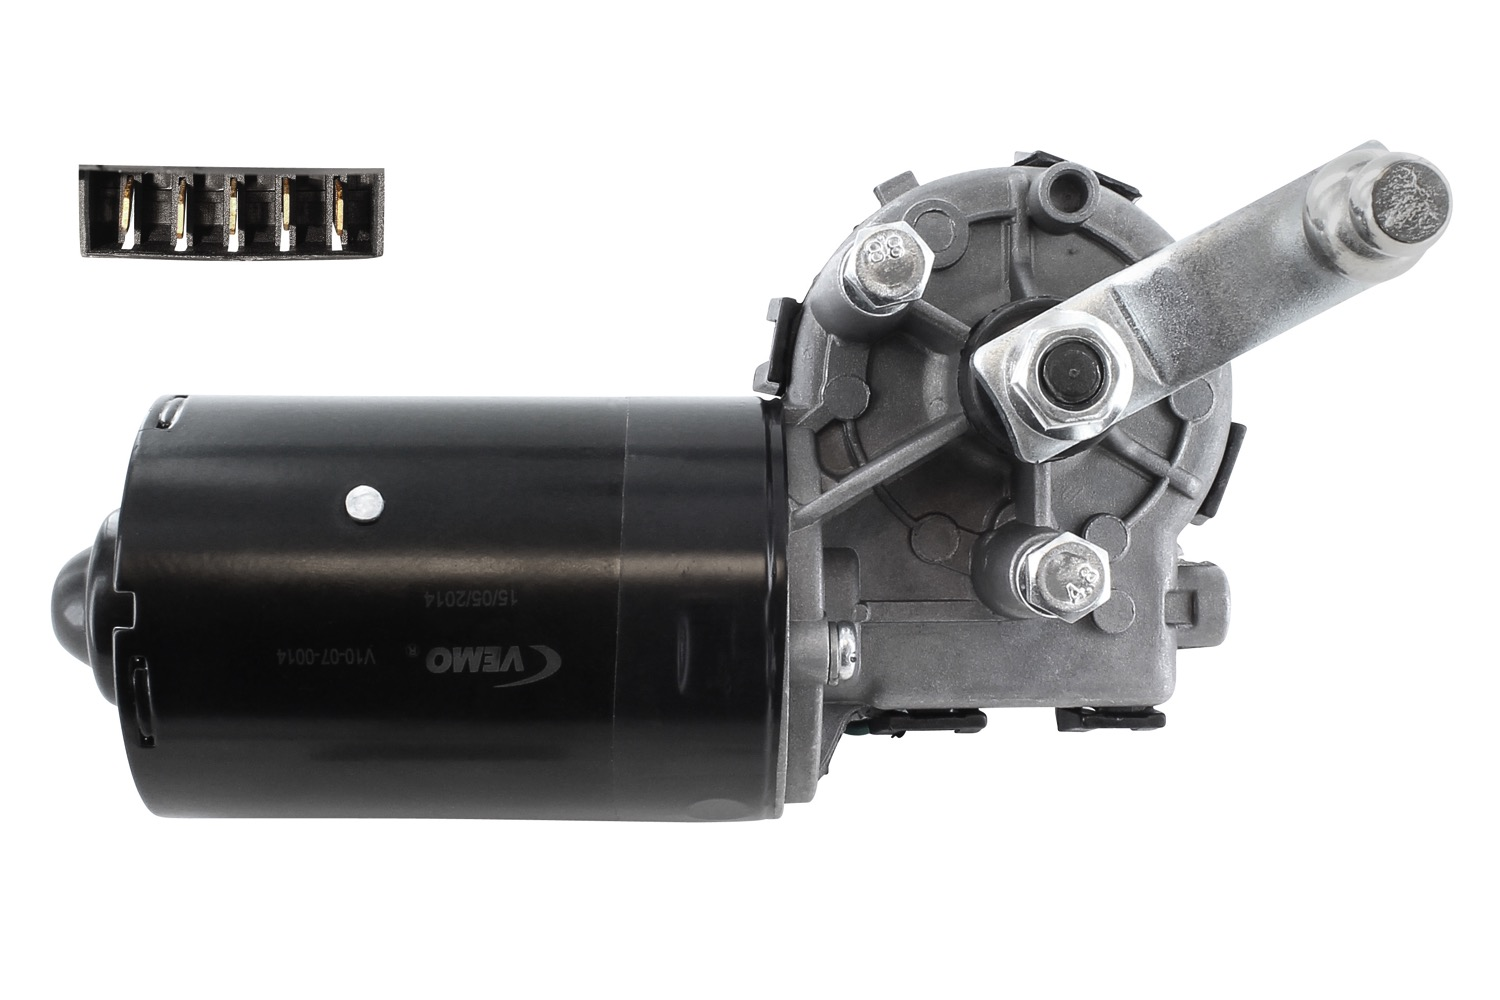 Audi volkswagen windshield wiper motor vemo v10070014 for Windshield wiper motor price